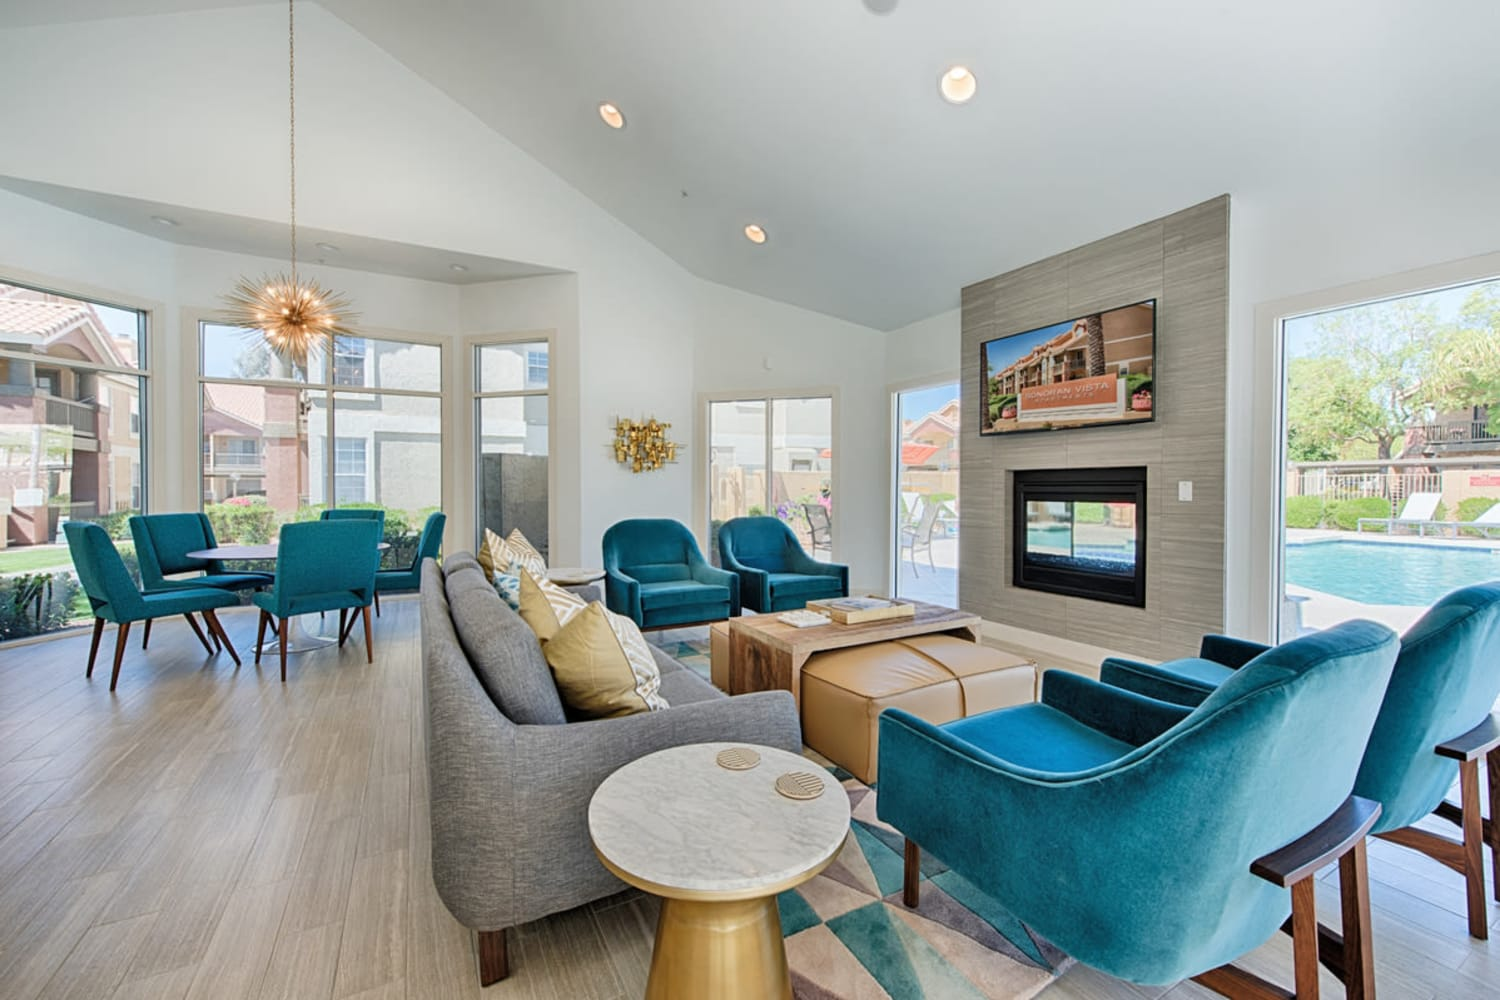 Sonoran Vista Apartments in Scottsdale, Arizona, offer a clubhouse with plenty of comfortable seating around the television